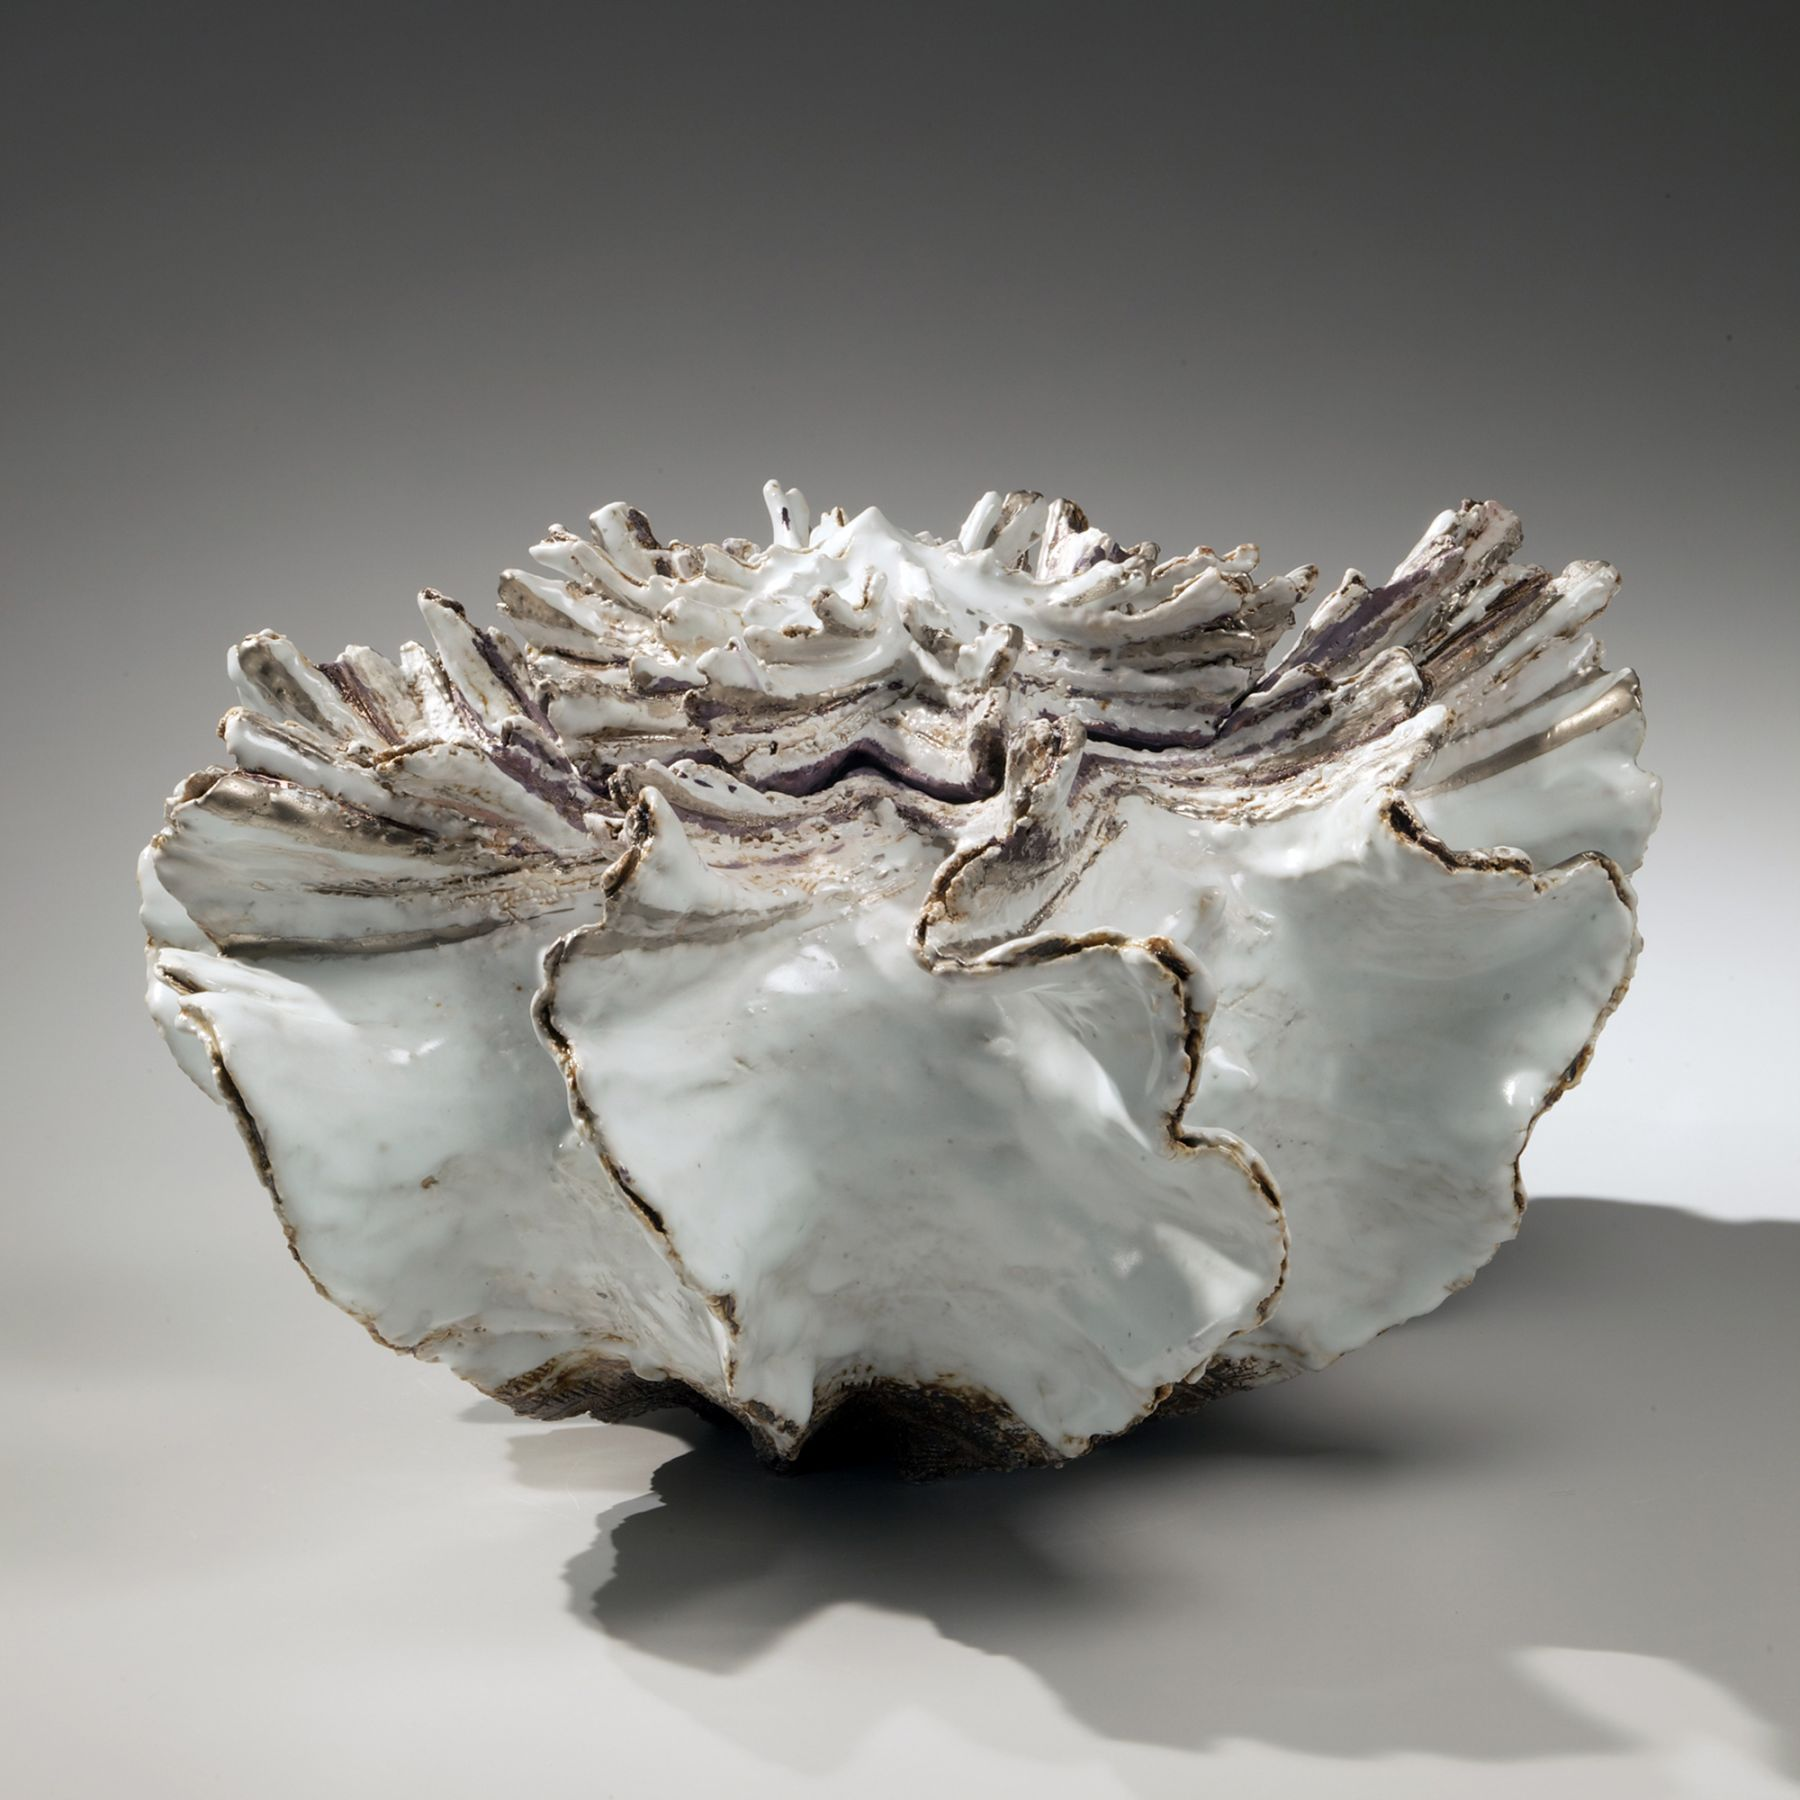 Low pleated shell-shaped covered vessel with streaked top, silver glaze along the flaring edges, white-glazed interior and purple-glazed interior rim, 2011